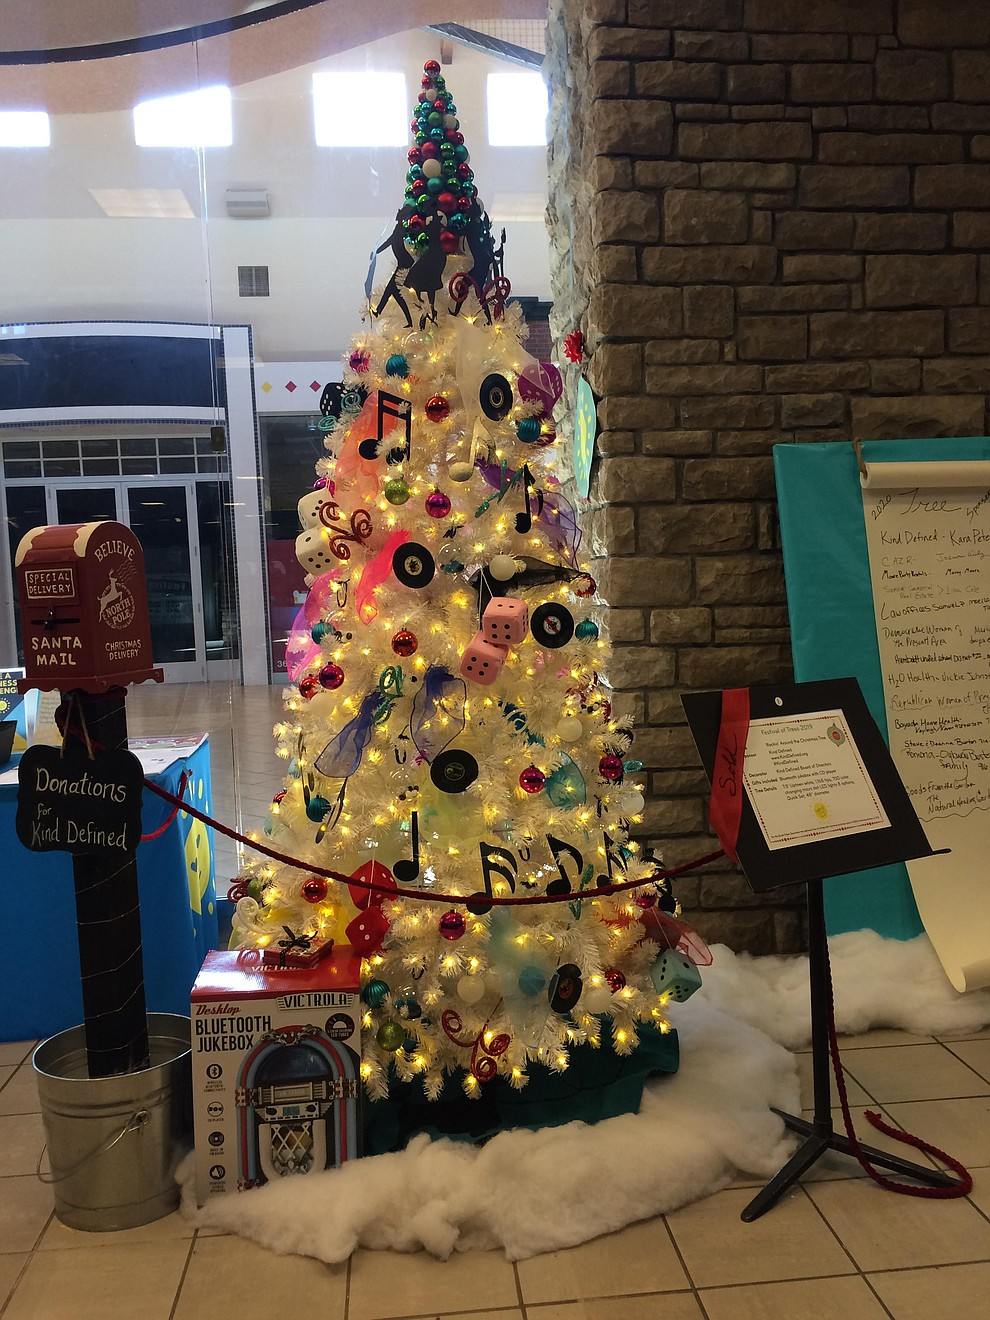 """Rockin' Around the Christmas Tree,"" sponsored by Kind Defined  and decorated by the Kind Defined Board of Directors found at the Festival of Trees 2019 at Prescott Gateway Mall from Wednesday, Nov. 20 through Saturday, Nov. 23. (Jason Wheeler/Courier)"